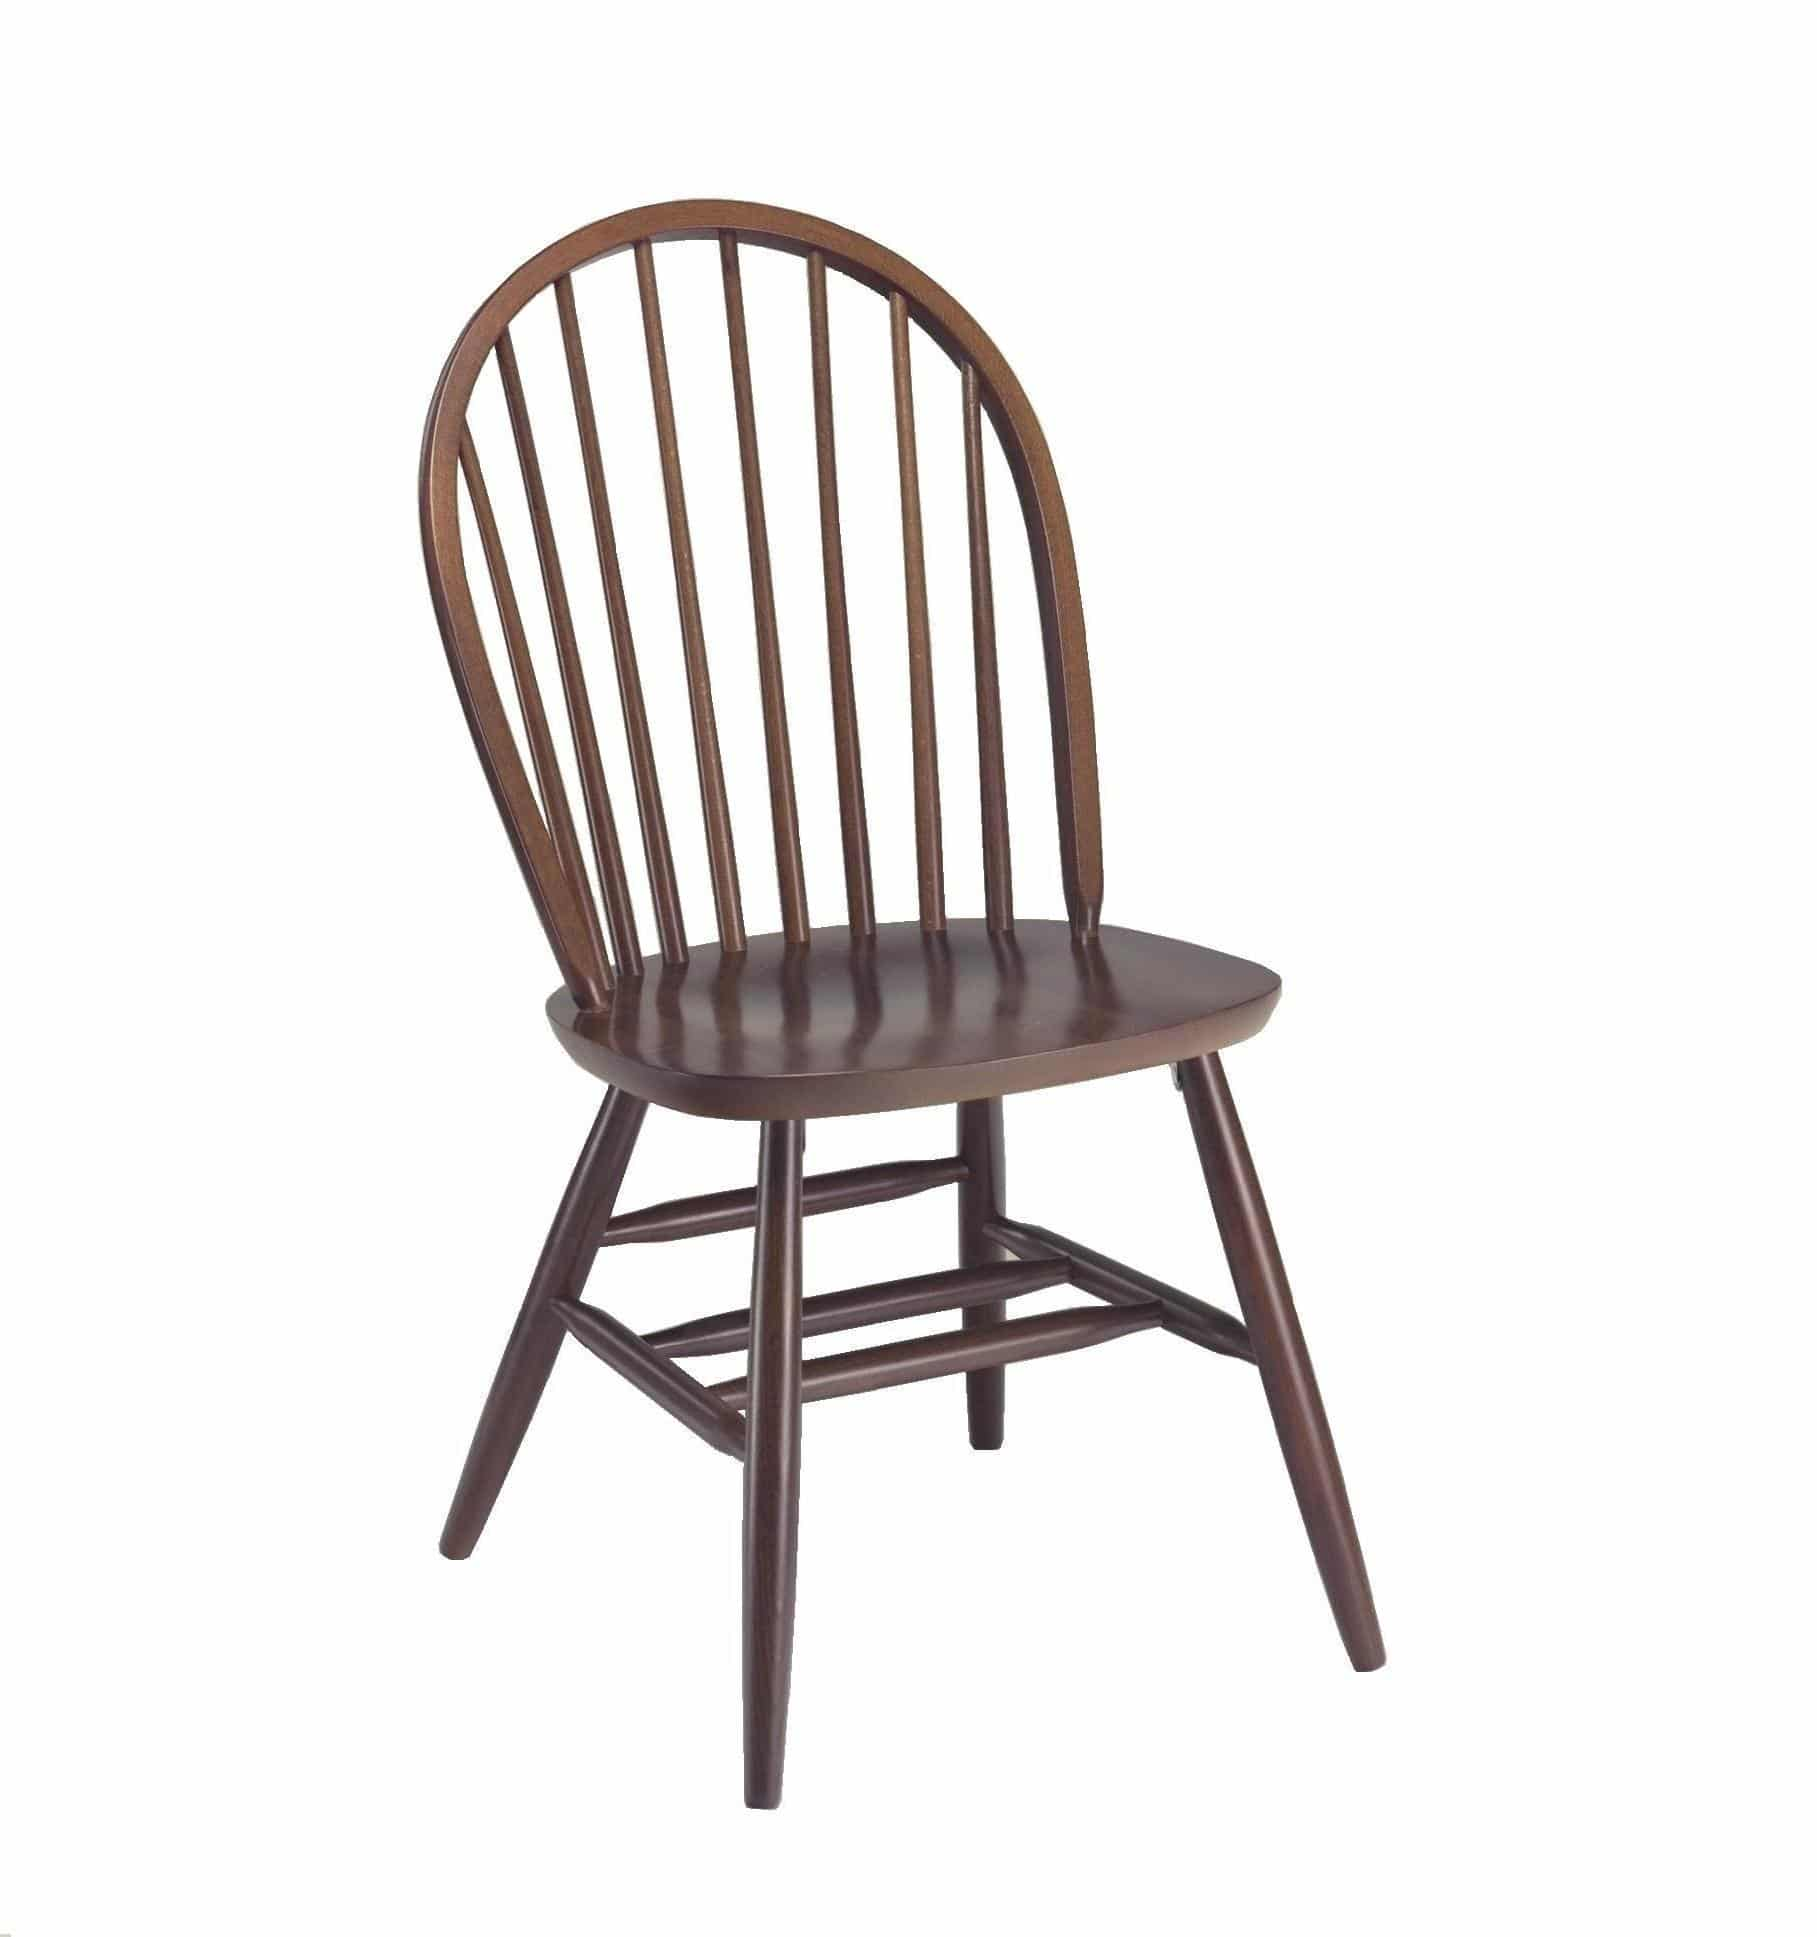 Colonial Windsor Chair with Spindle Back – Model 9 – Restaurant